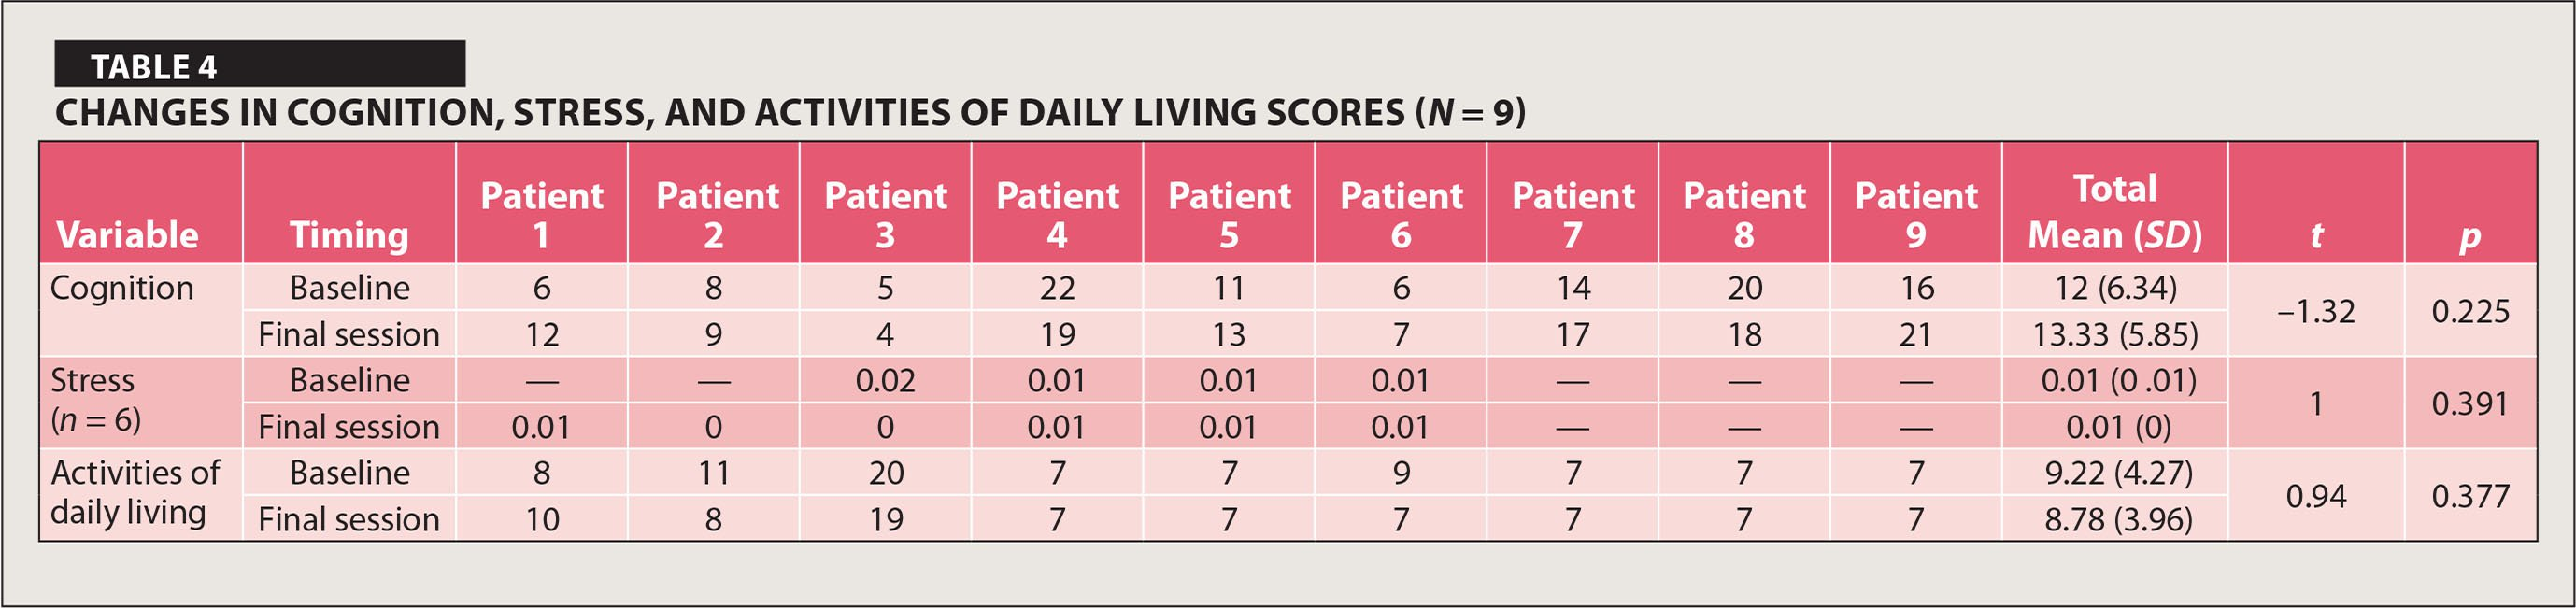 Changes in Cognition, Stress, and Activities of Daily Living Scores (N = 9)